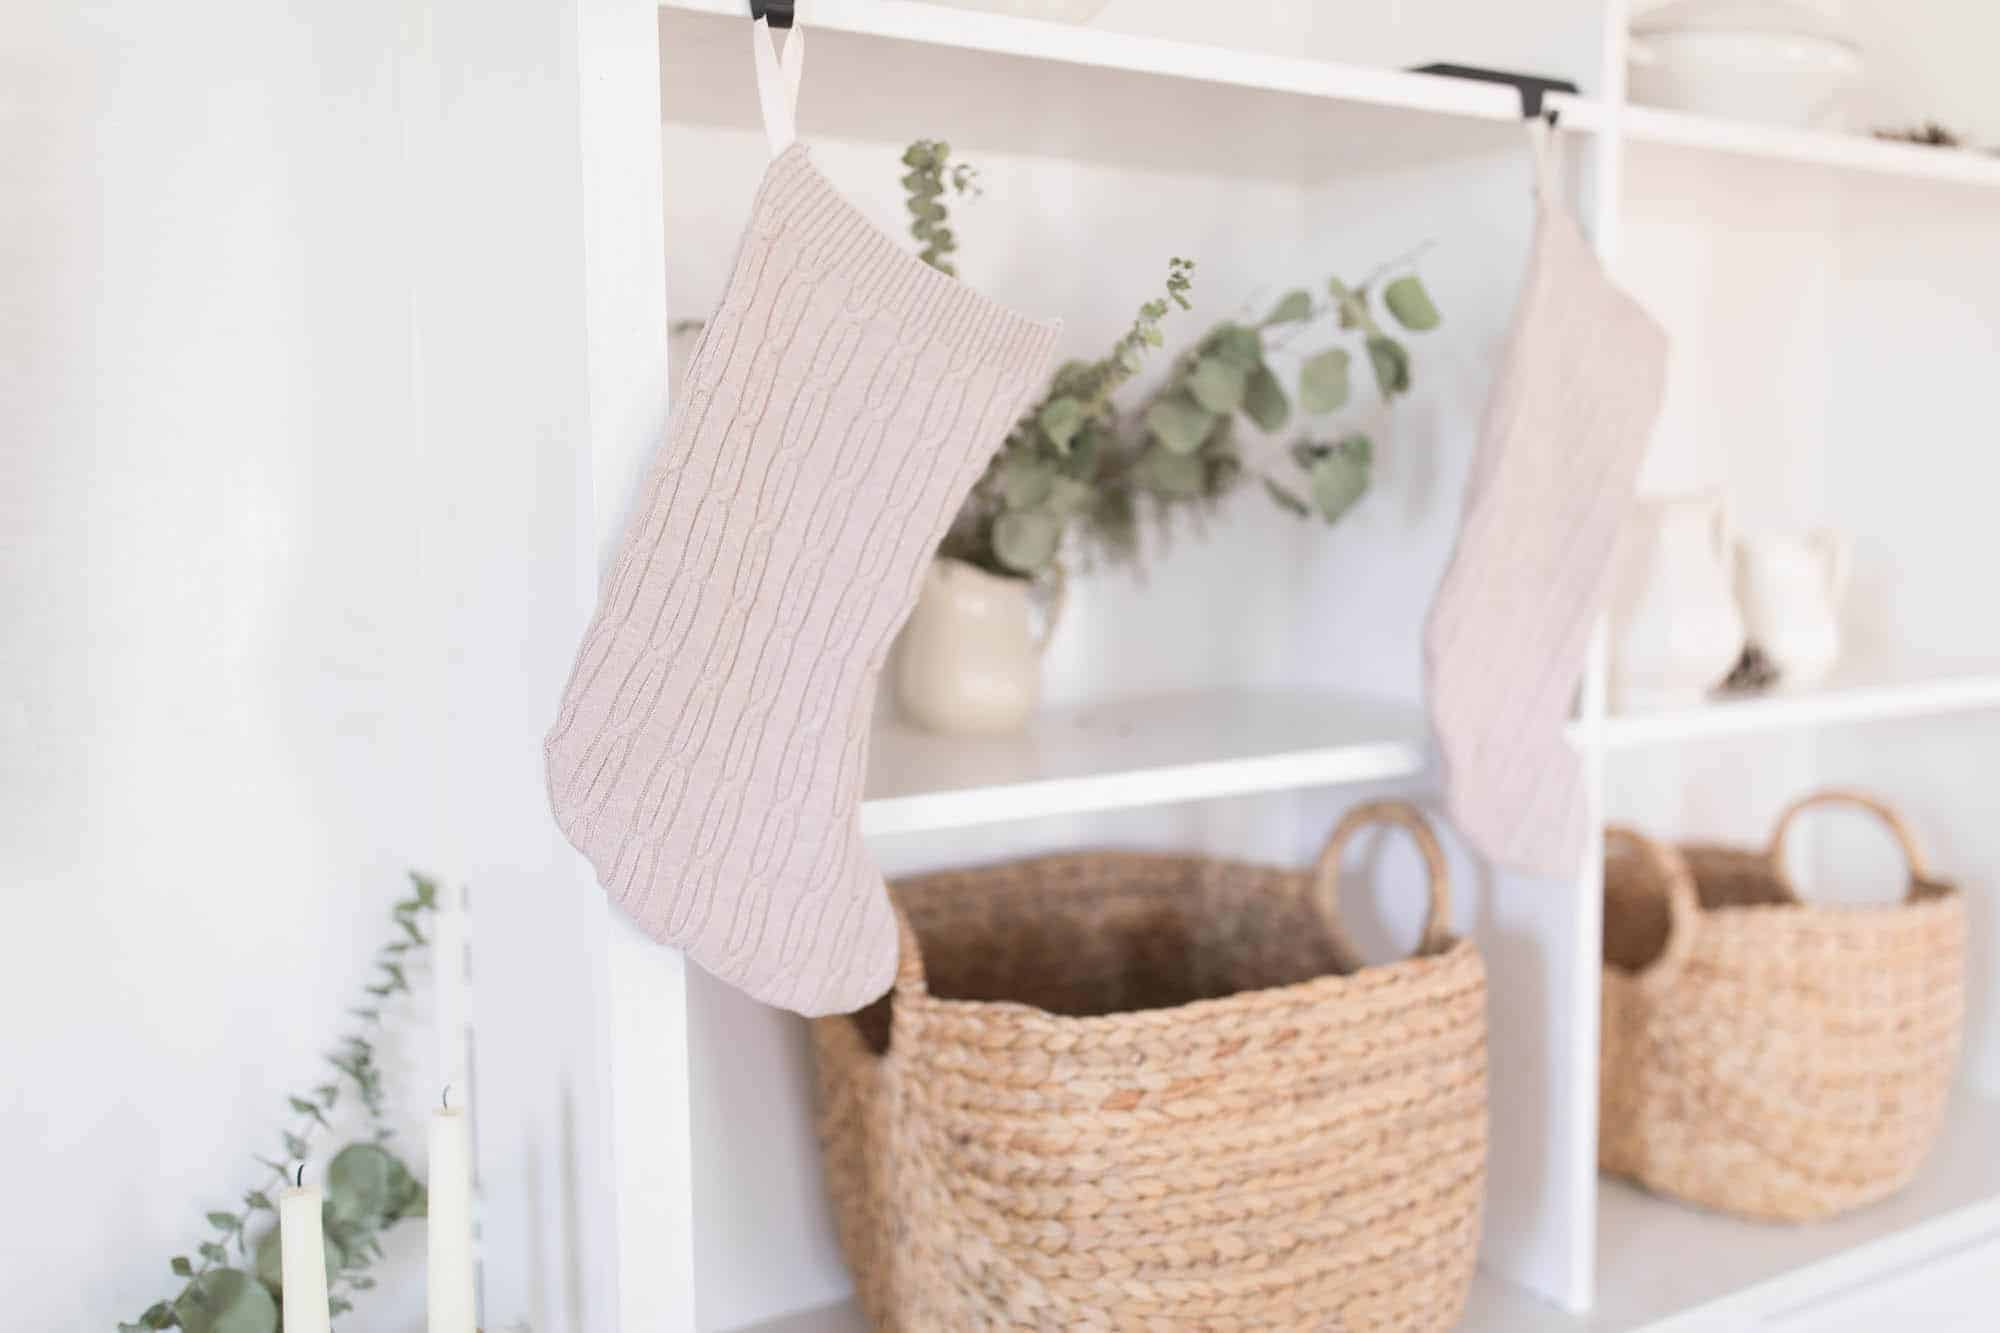 DIY Christmas Stockings from Sweaters Simple Video Tutorial